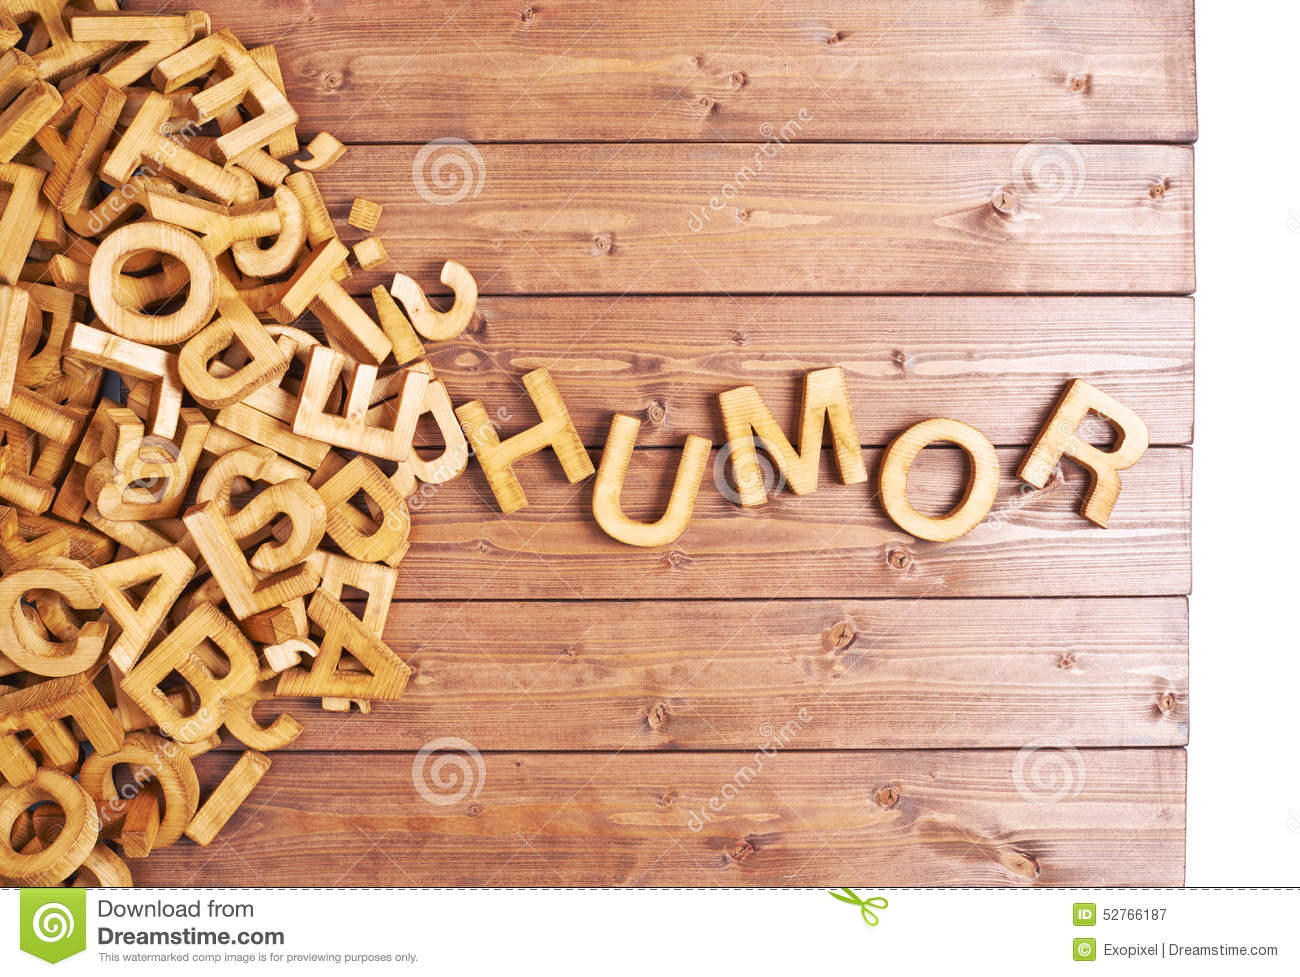 word humor letters poetry wooden block board surface pile composition letter preview poetic devices